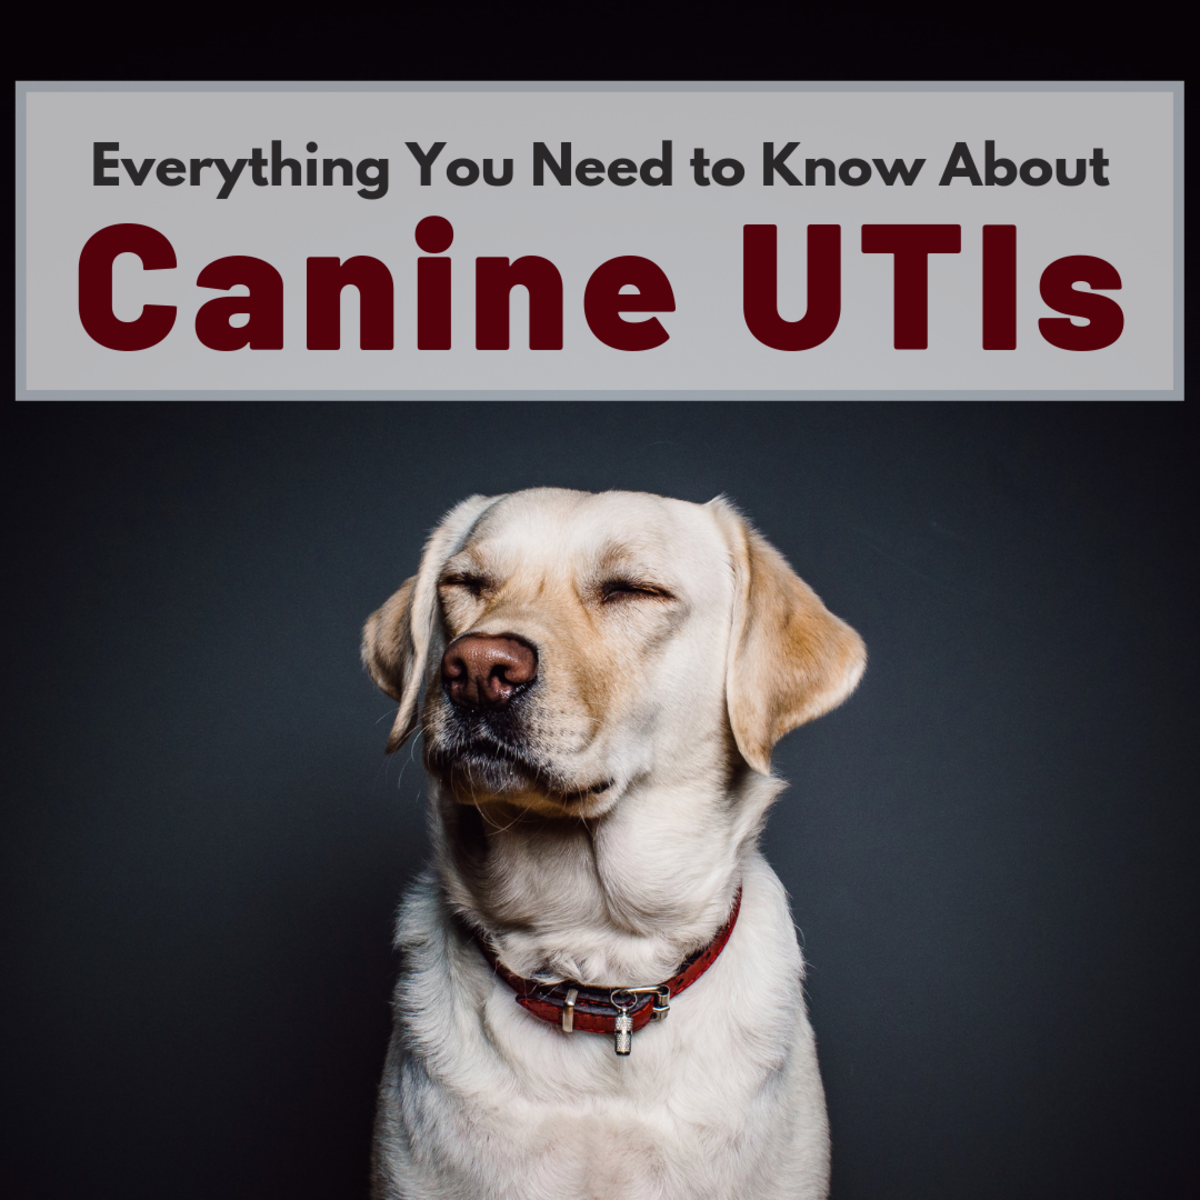 Urinary Tract Infections in Dogs: What You Should Know